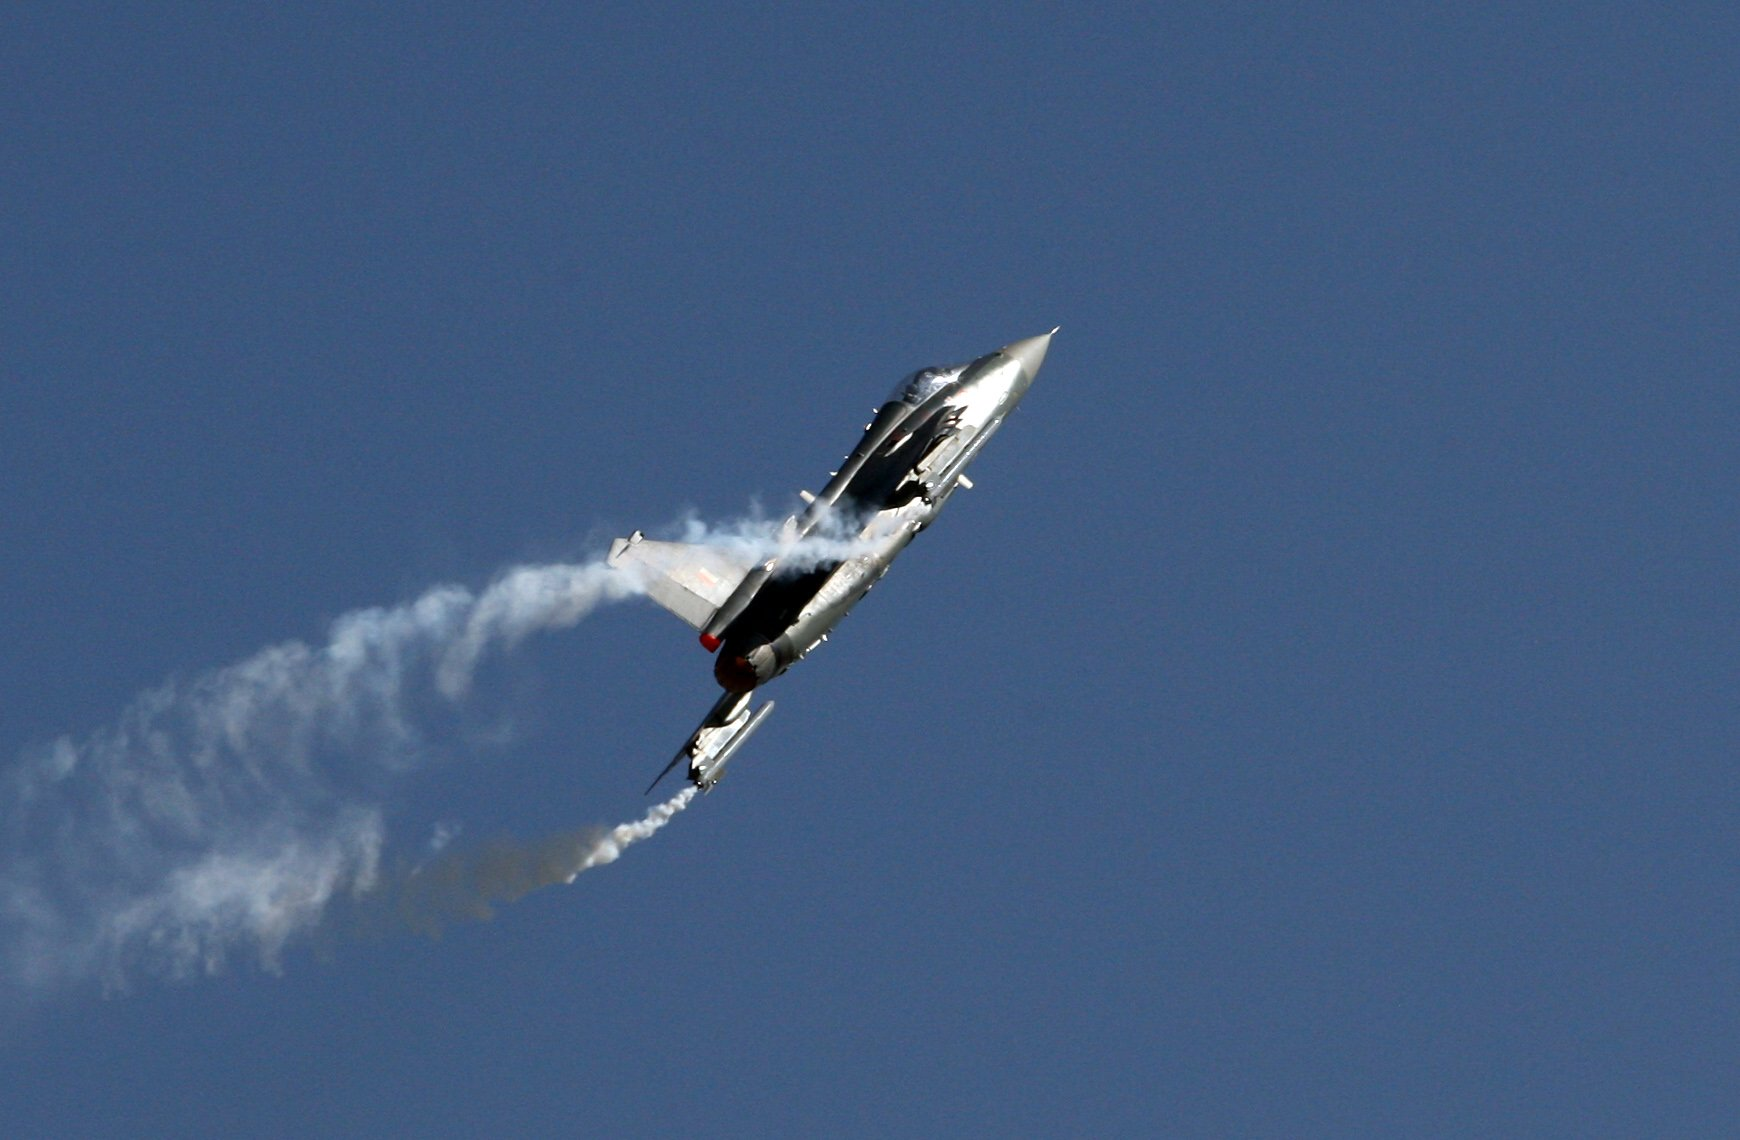 Aero India Show to be held in Bengaluru from February 3